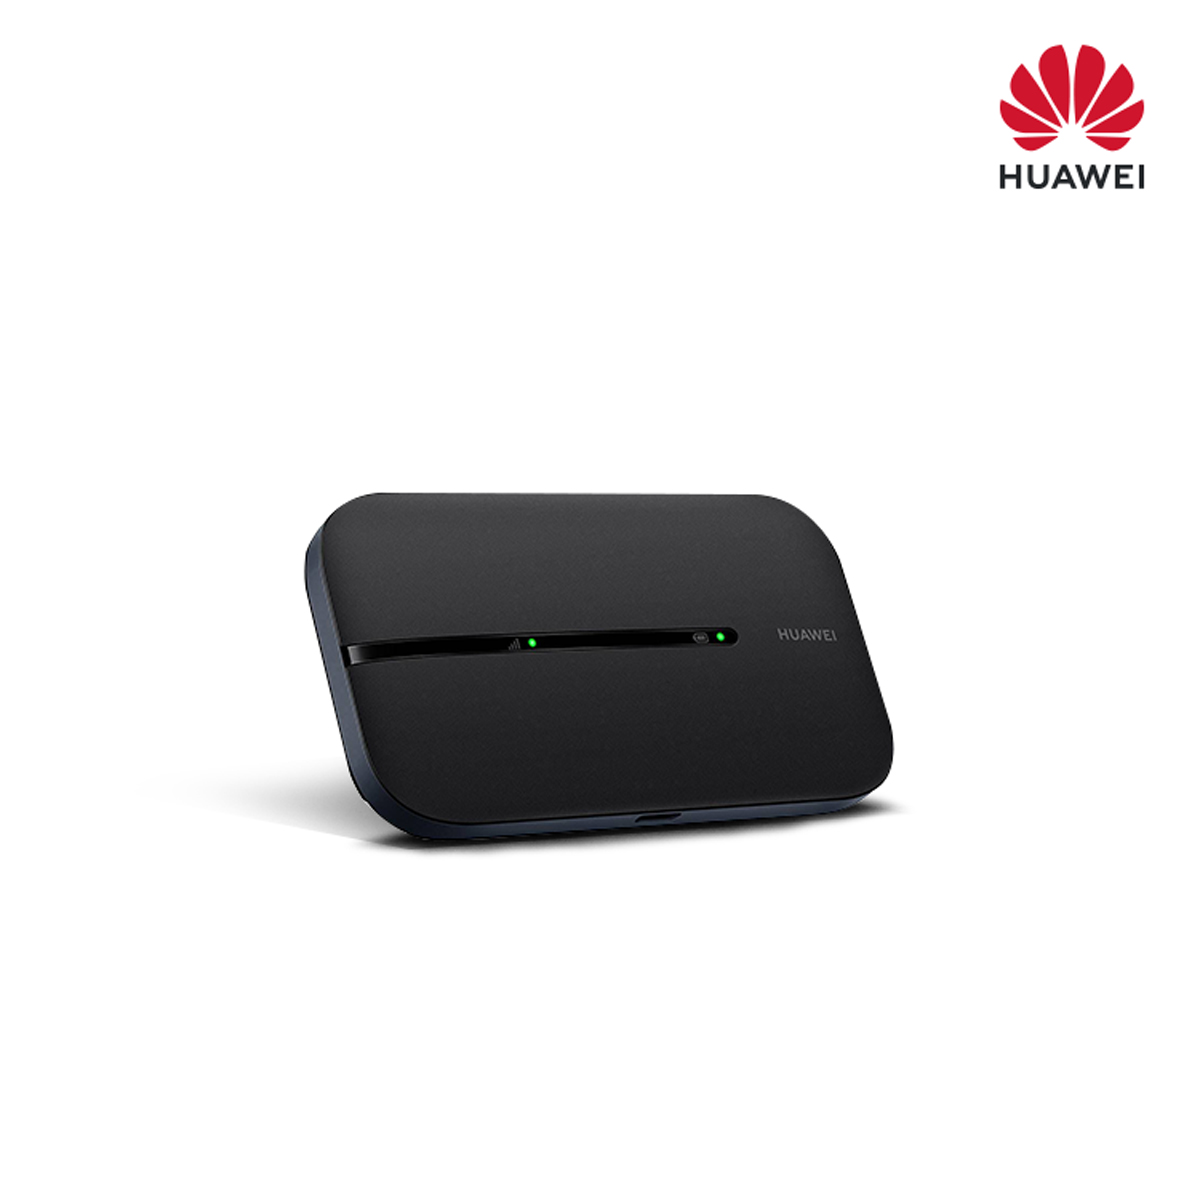 Huawei-E5576-856-4G-Pocket-WiFi-LTE-Category-4